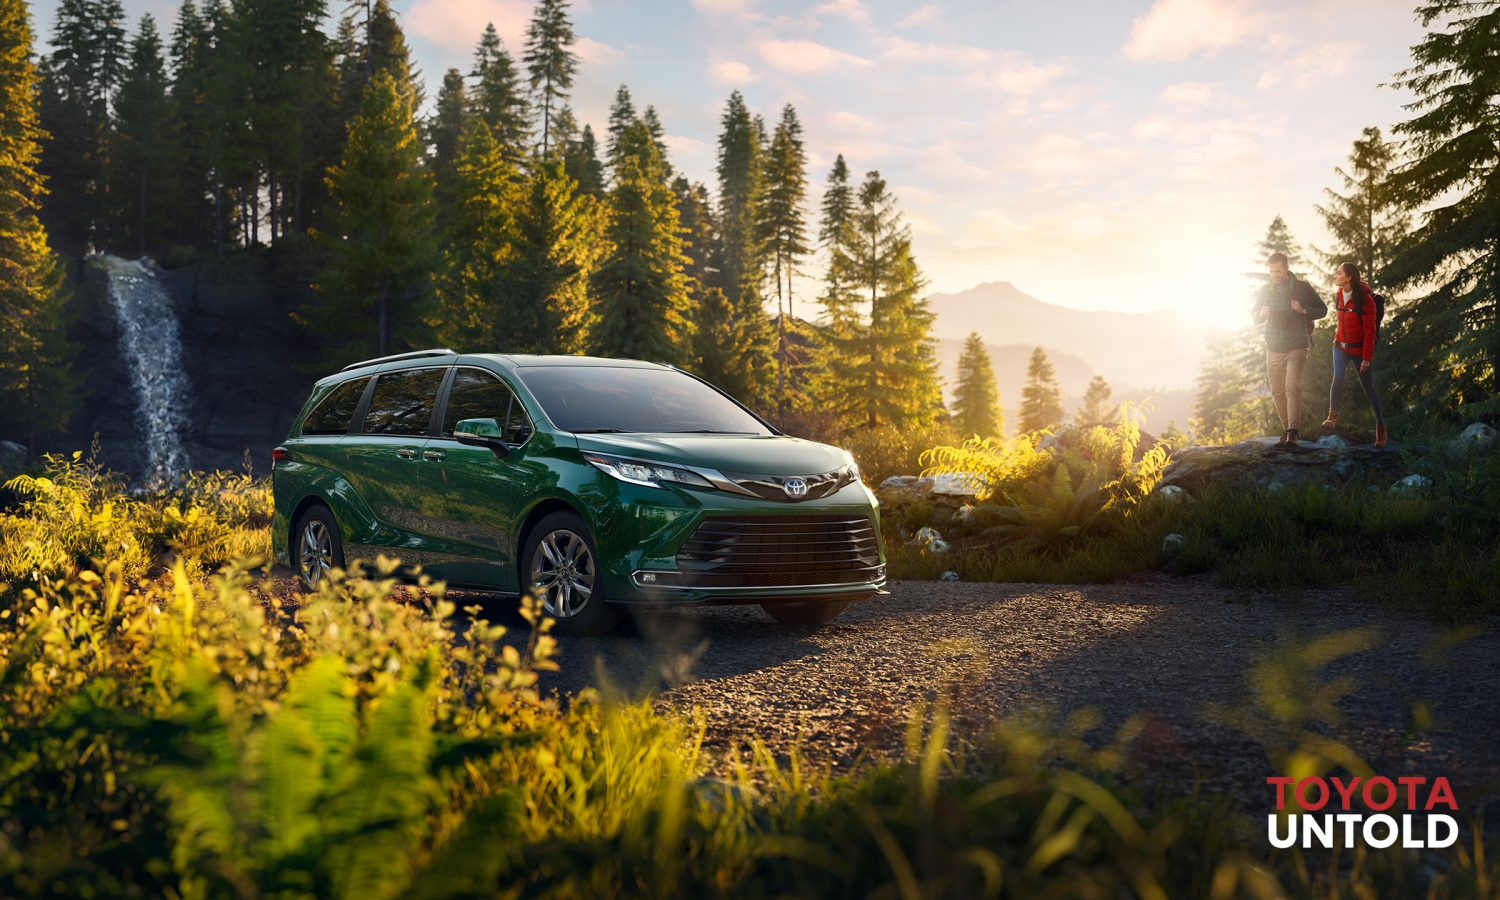 34: Sienna: Driving the Swagger Wagon Into 2021